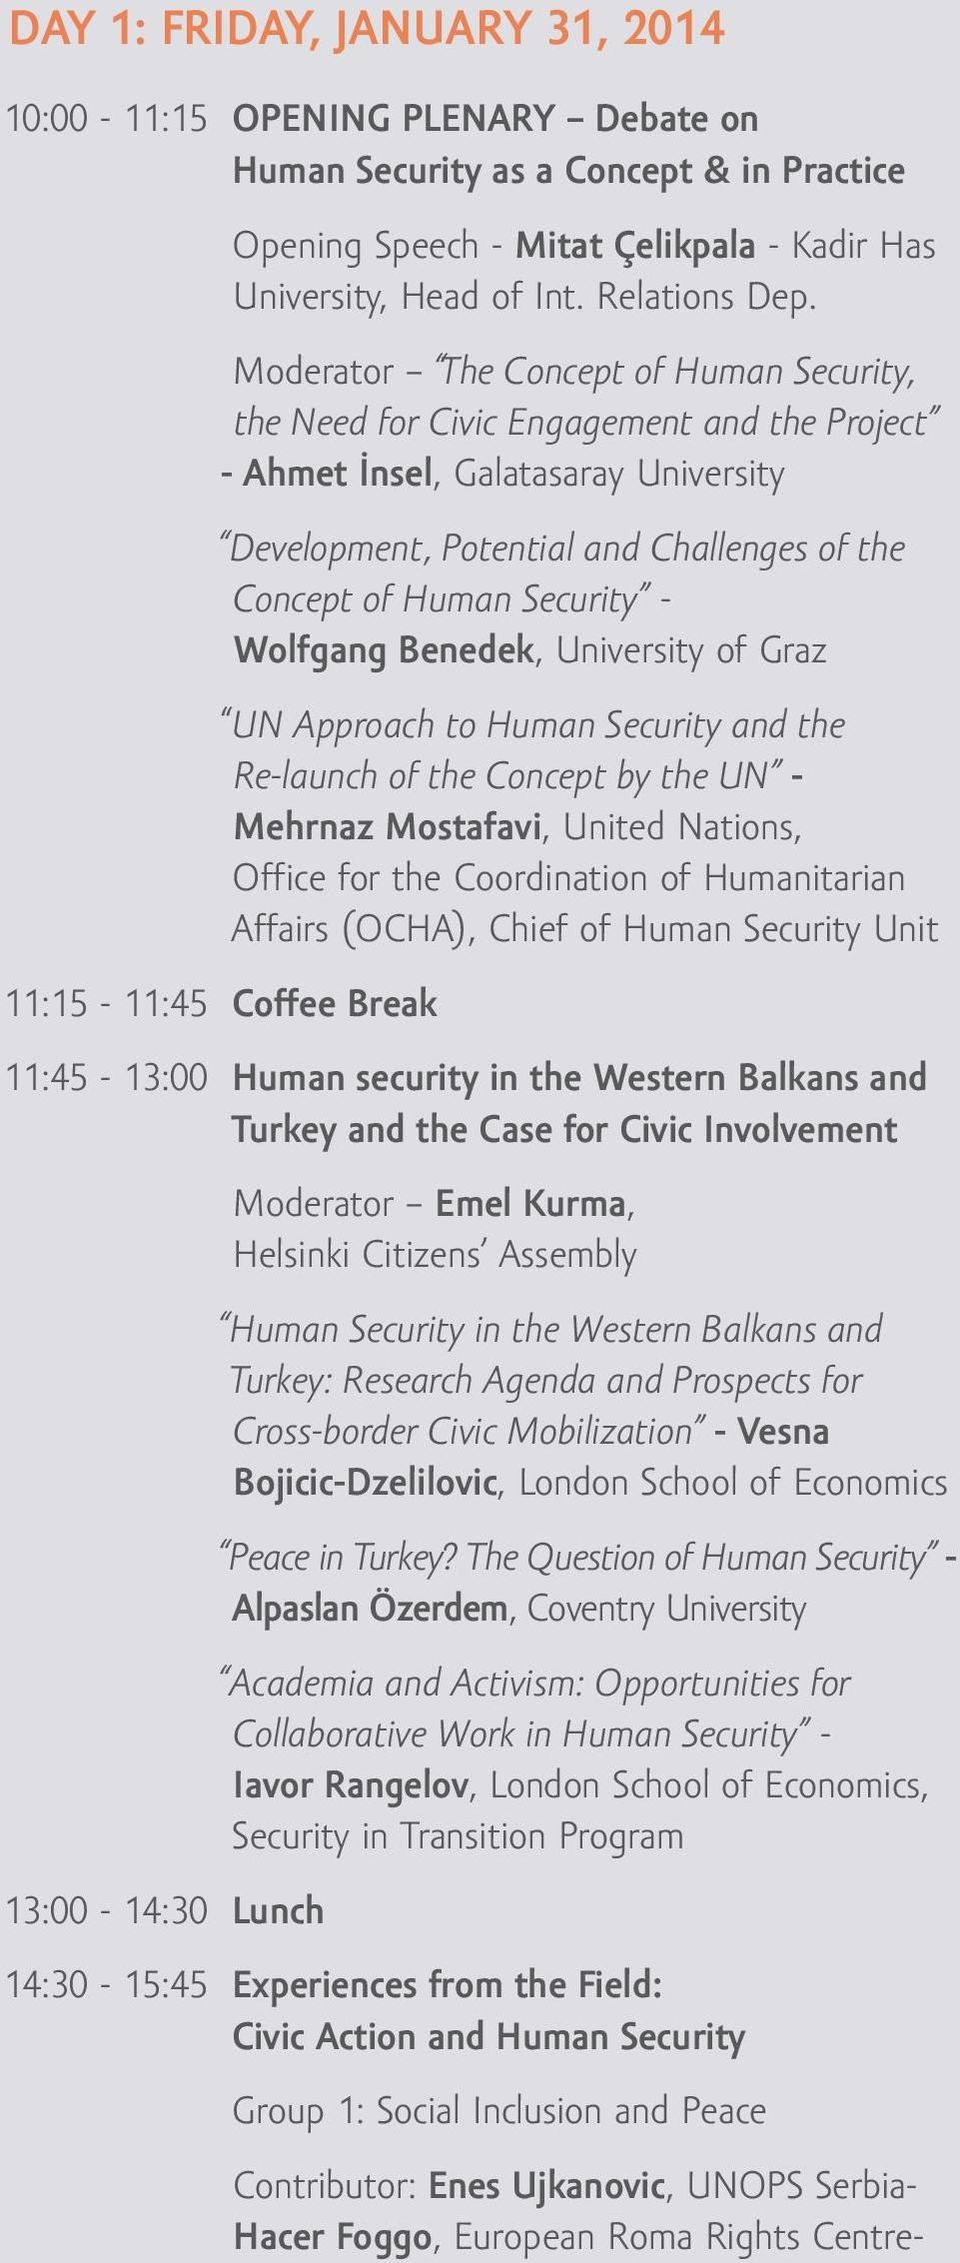 Wolfgang Benedek, University of Graz 11:15-11:45 Coffee Break UN Approach to Human Security and the Re-launch of the Concept by the UN - Mehrnaz Mostafavi, United Nations, Office for the Coordination